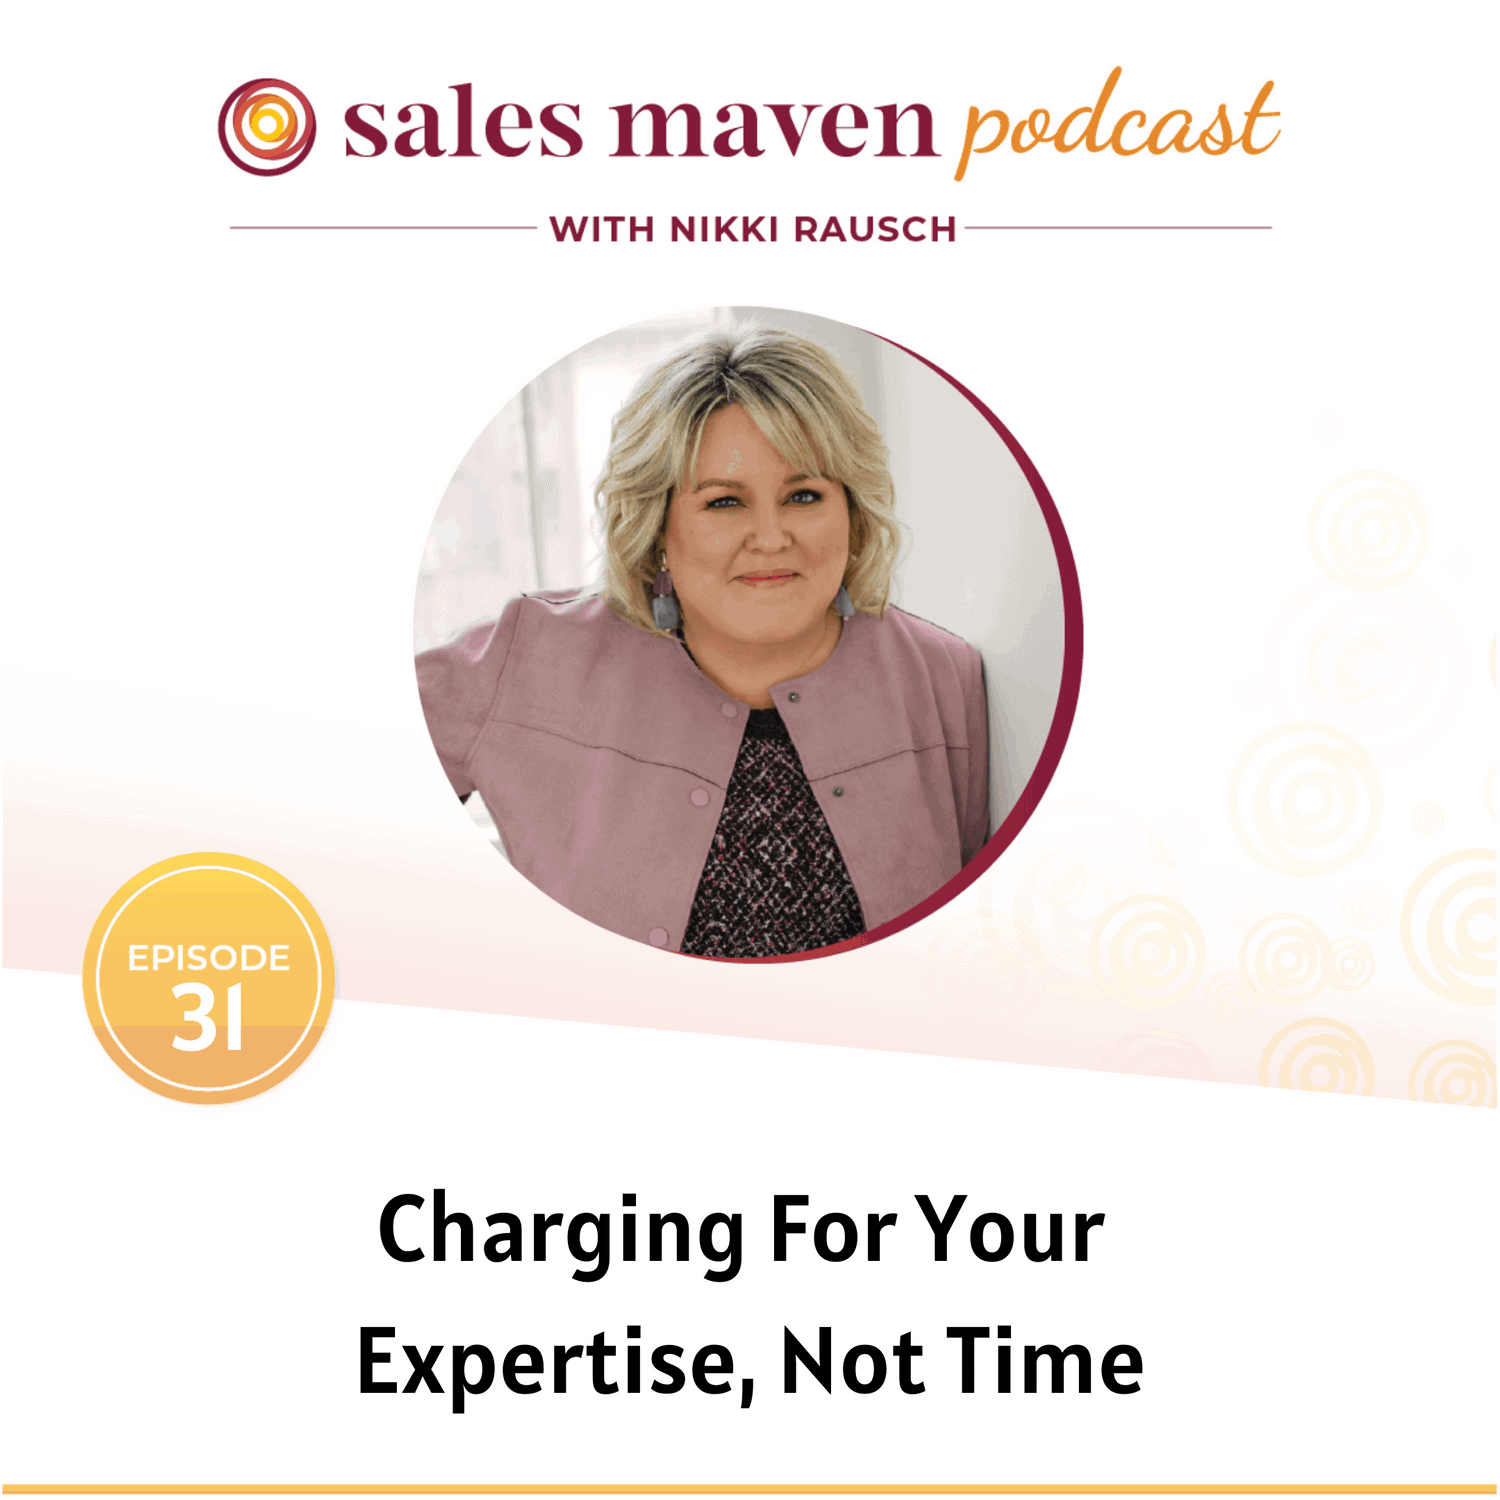 Charging For Your Expertise, Not Time